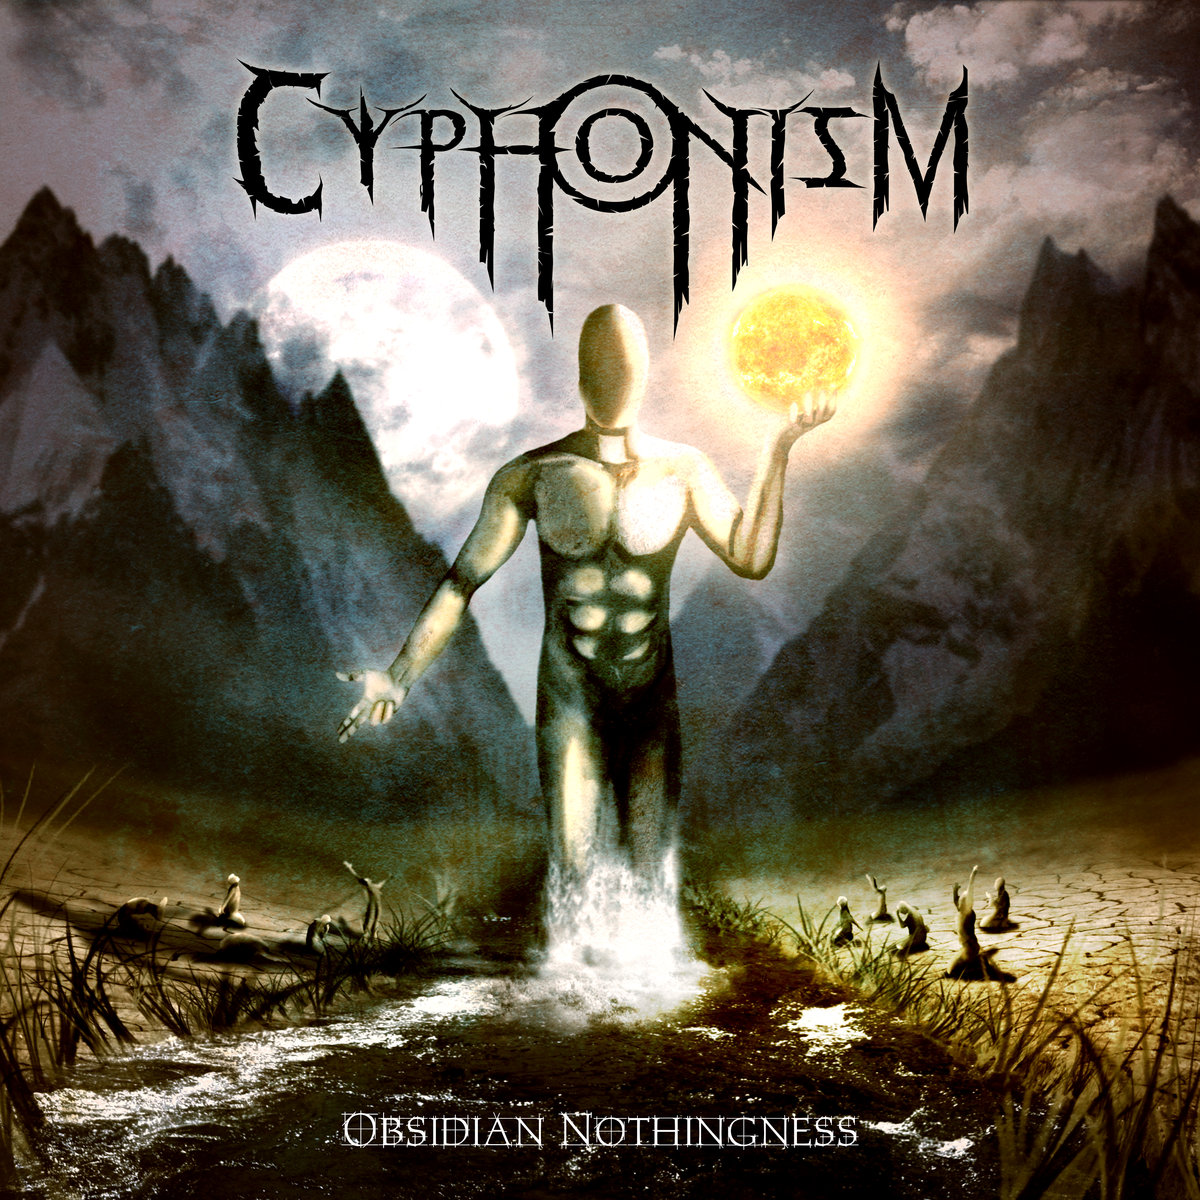 Cyphonism – Obsidian Nothingness 5/6